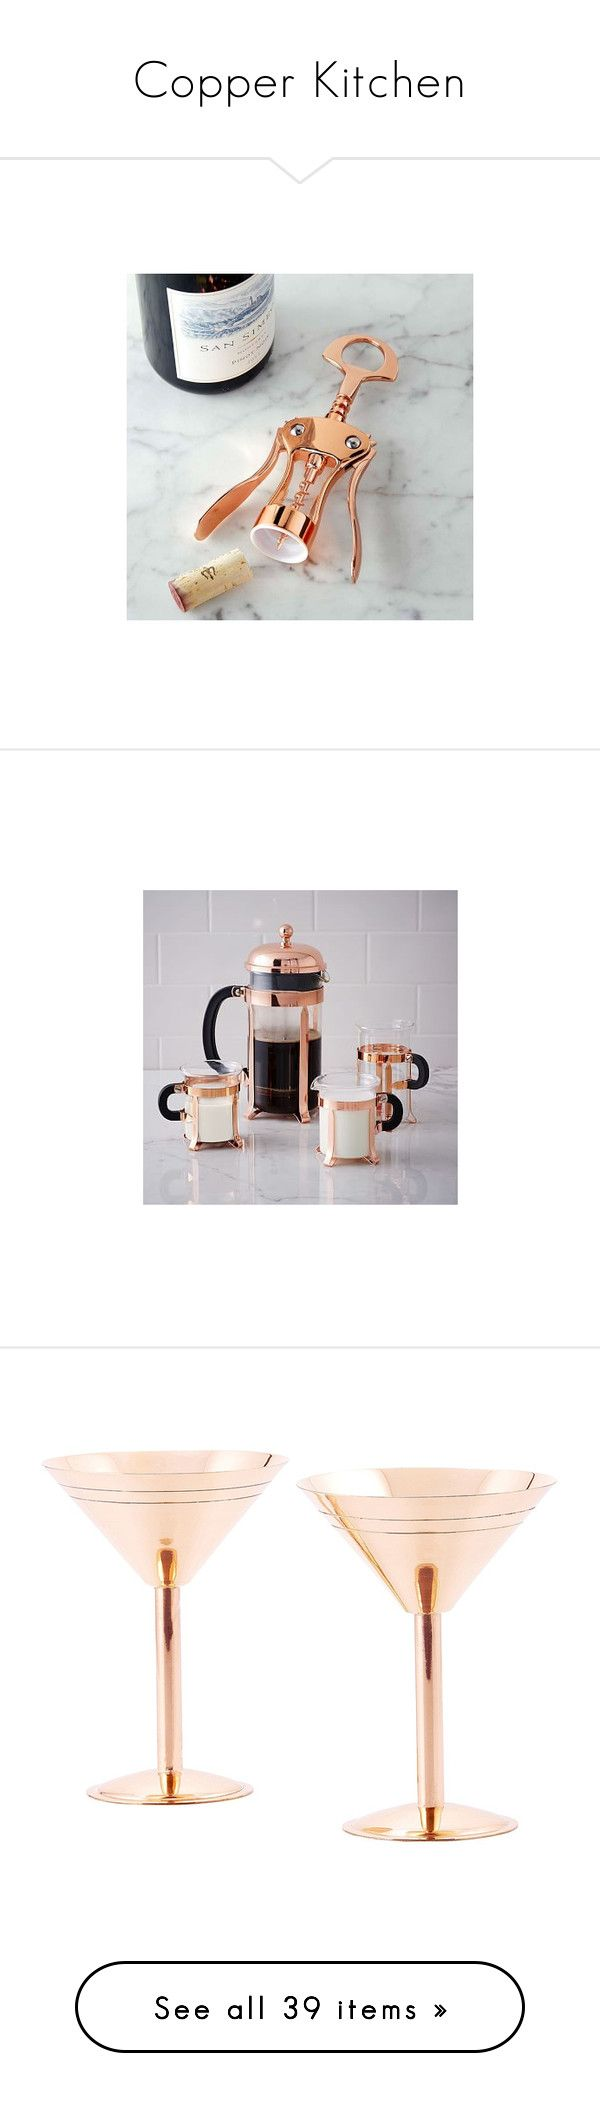 """Copper Kitchen"" by hellobrit ❤ liked on Polyvore featuring home, kitchen & dining, bar tools, wine corkscrew, wine opener, winged corkscrew, wine corker, wine bottle corker, serveware and clear"